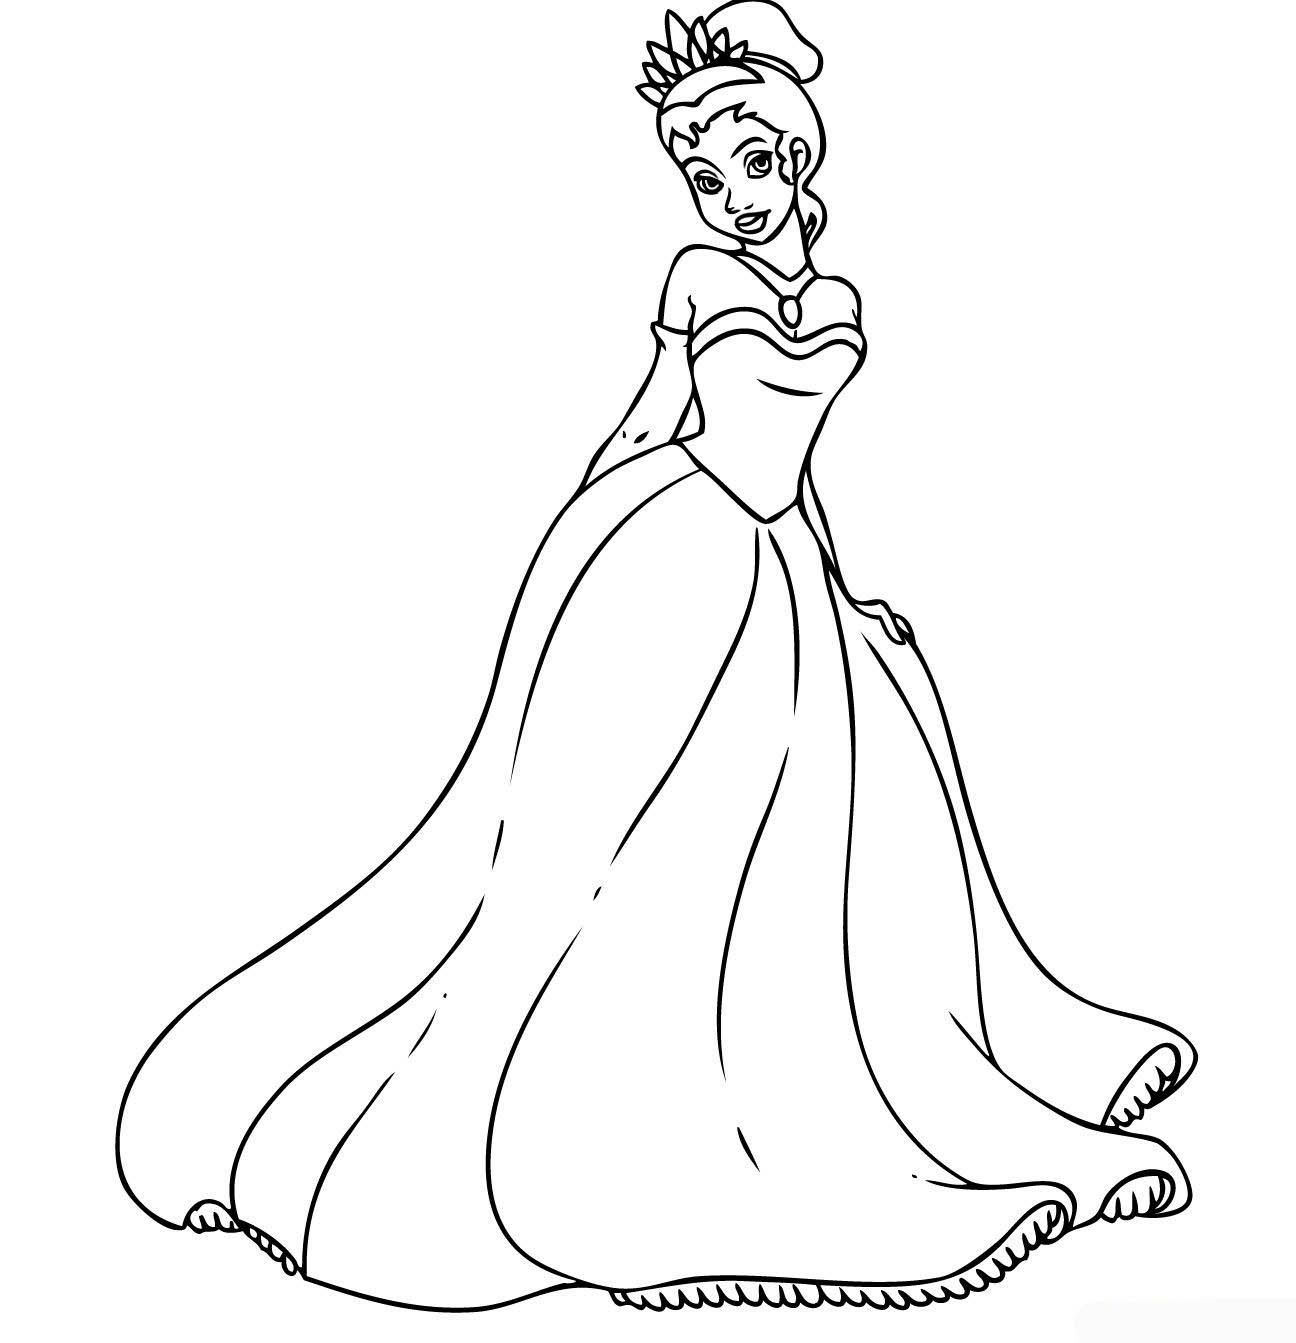 Pin By Tonette Skala On Coloring Cartoon Characters Princess Coloring Pages Disney Princess Coloring Pages Disney Princess Colors